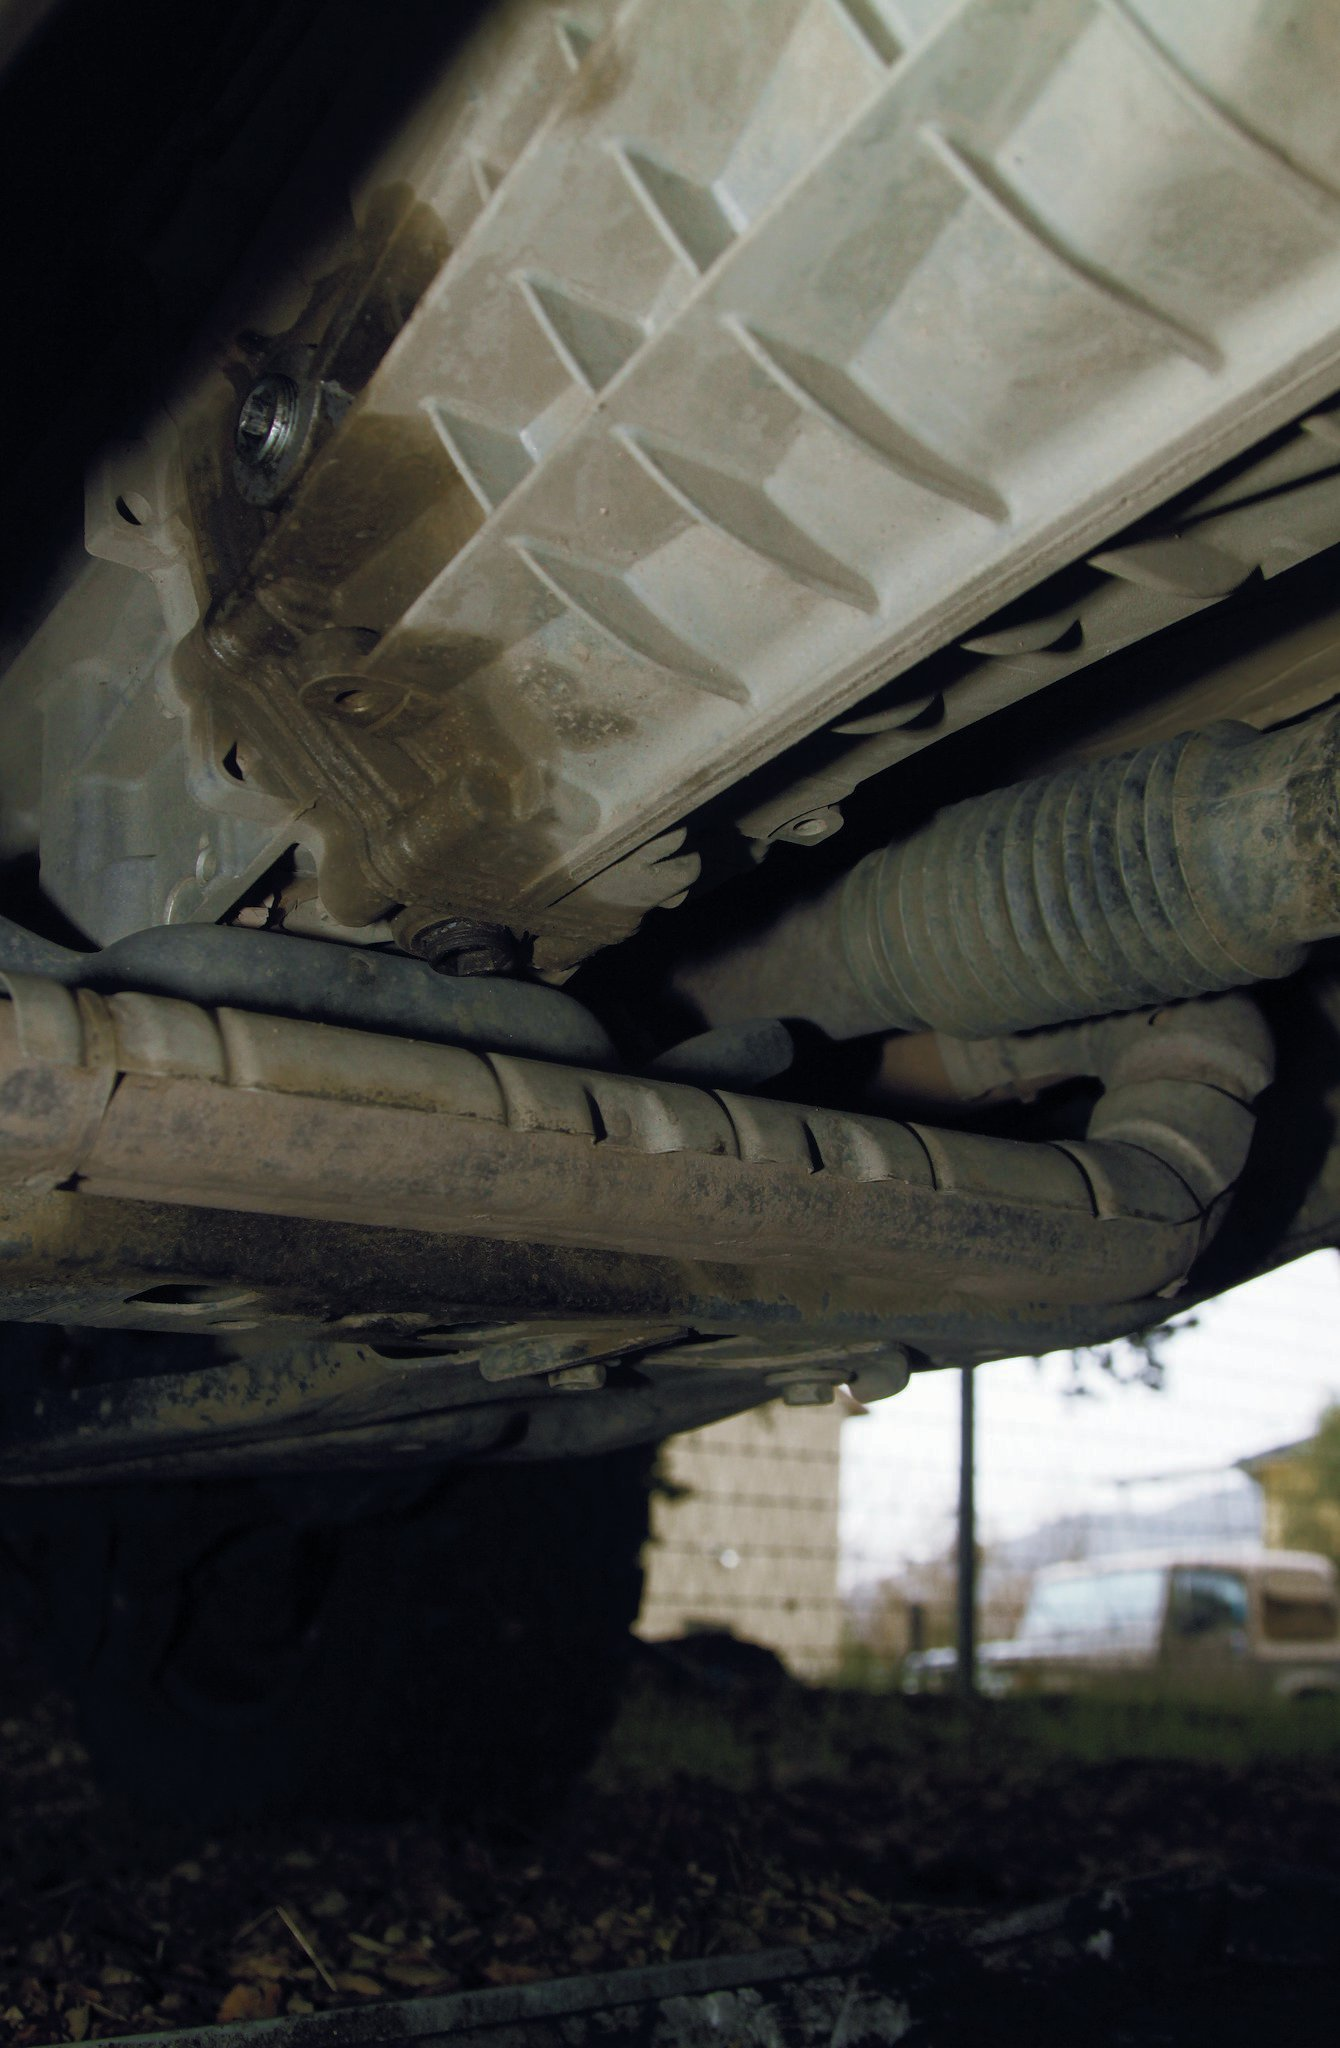 You will need to get the factory skidplate out of the way first, but the transmission and transfercase can both be drained while lying in roughly the same location. Drop the skidplate by removing the four bolts with an 18mm wrench or socket. The drain plug for the six-speed manual transmission is in a pretty bad spot, directly above the exhaust crossover. This necessitates the use of a special tool to remove the drain plug without dropping the exhaust.